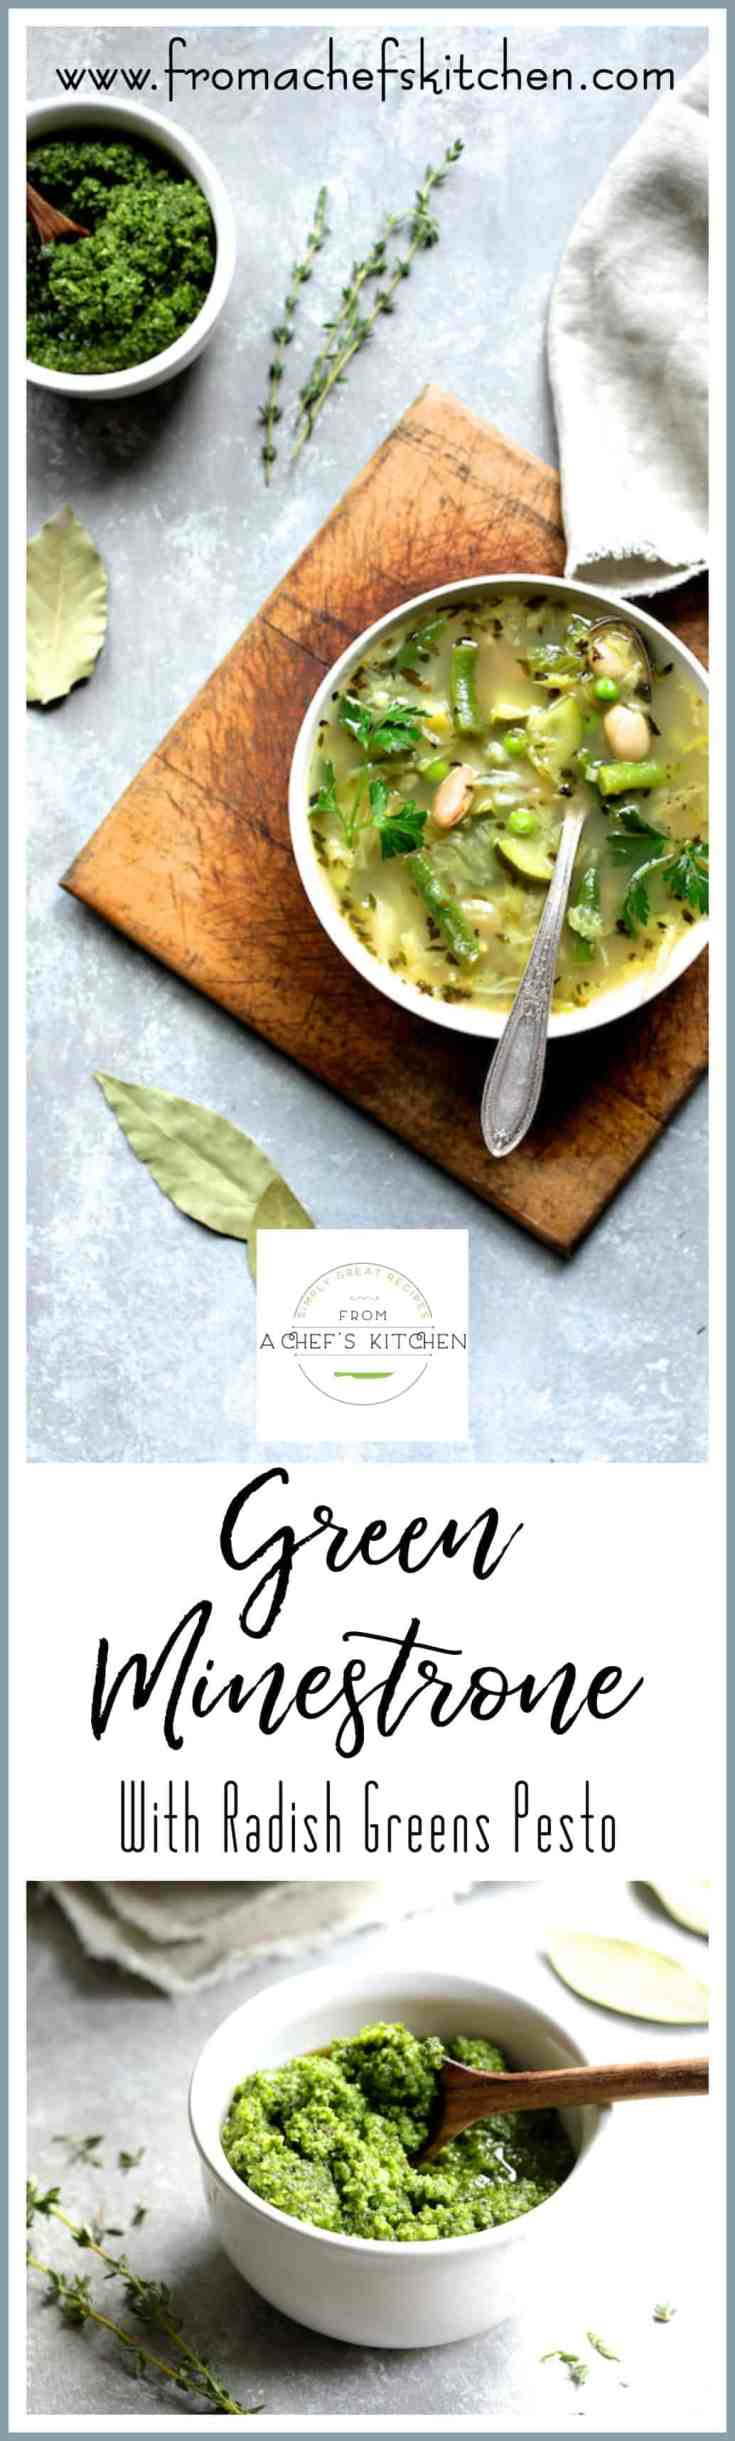 Green Minestrone with Radish Greens Pesto is a healthful taste of spring!  A twist on classic Italian minestrone, this version has lots of spring vegetables which will make transitioning from cold weather to warm weather easy and delicious! #soup #minestrone #greenminestrone #pesto